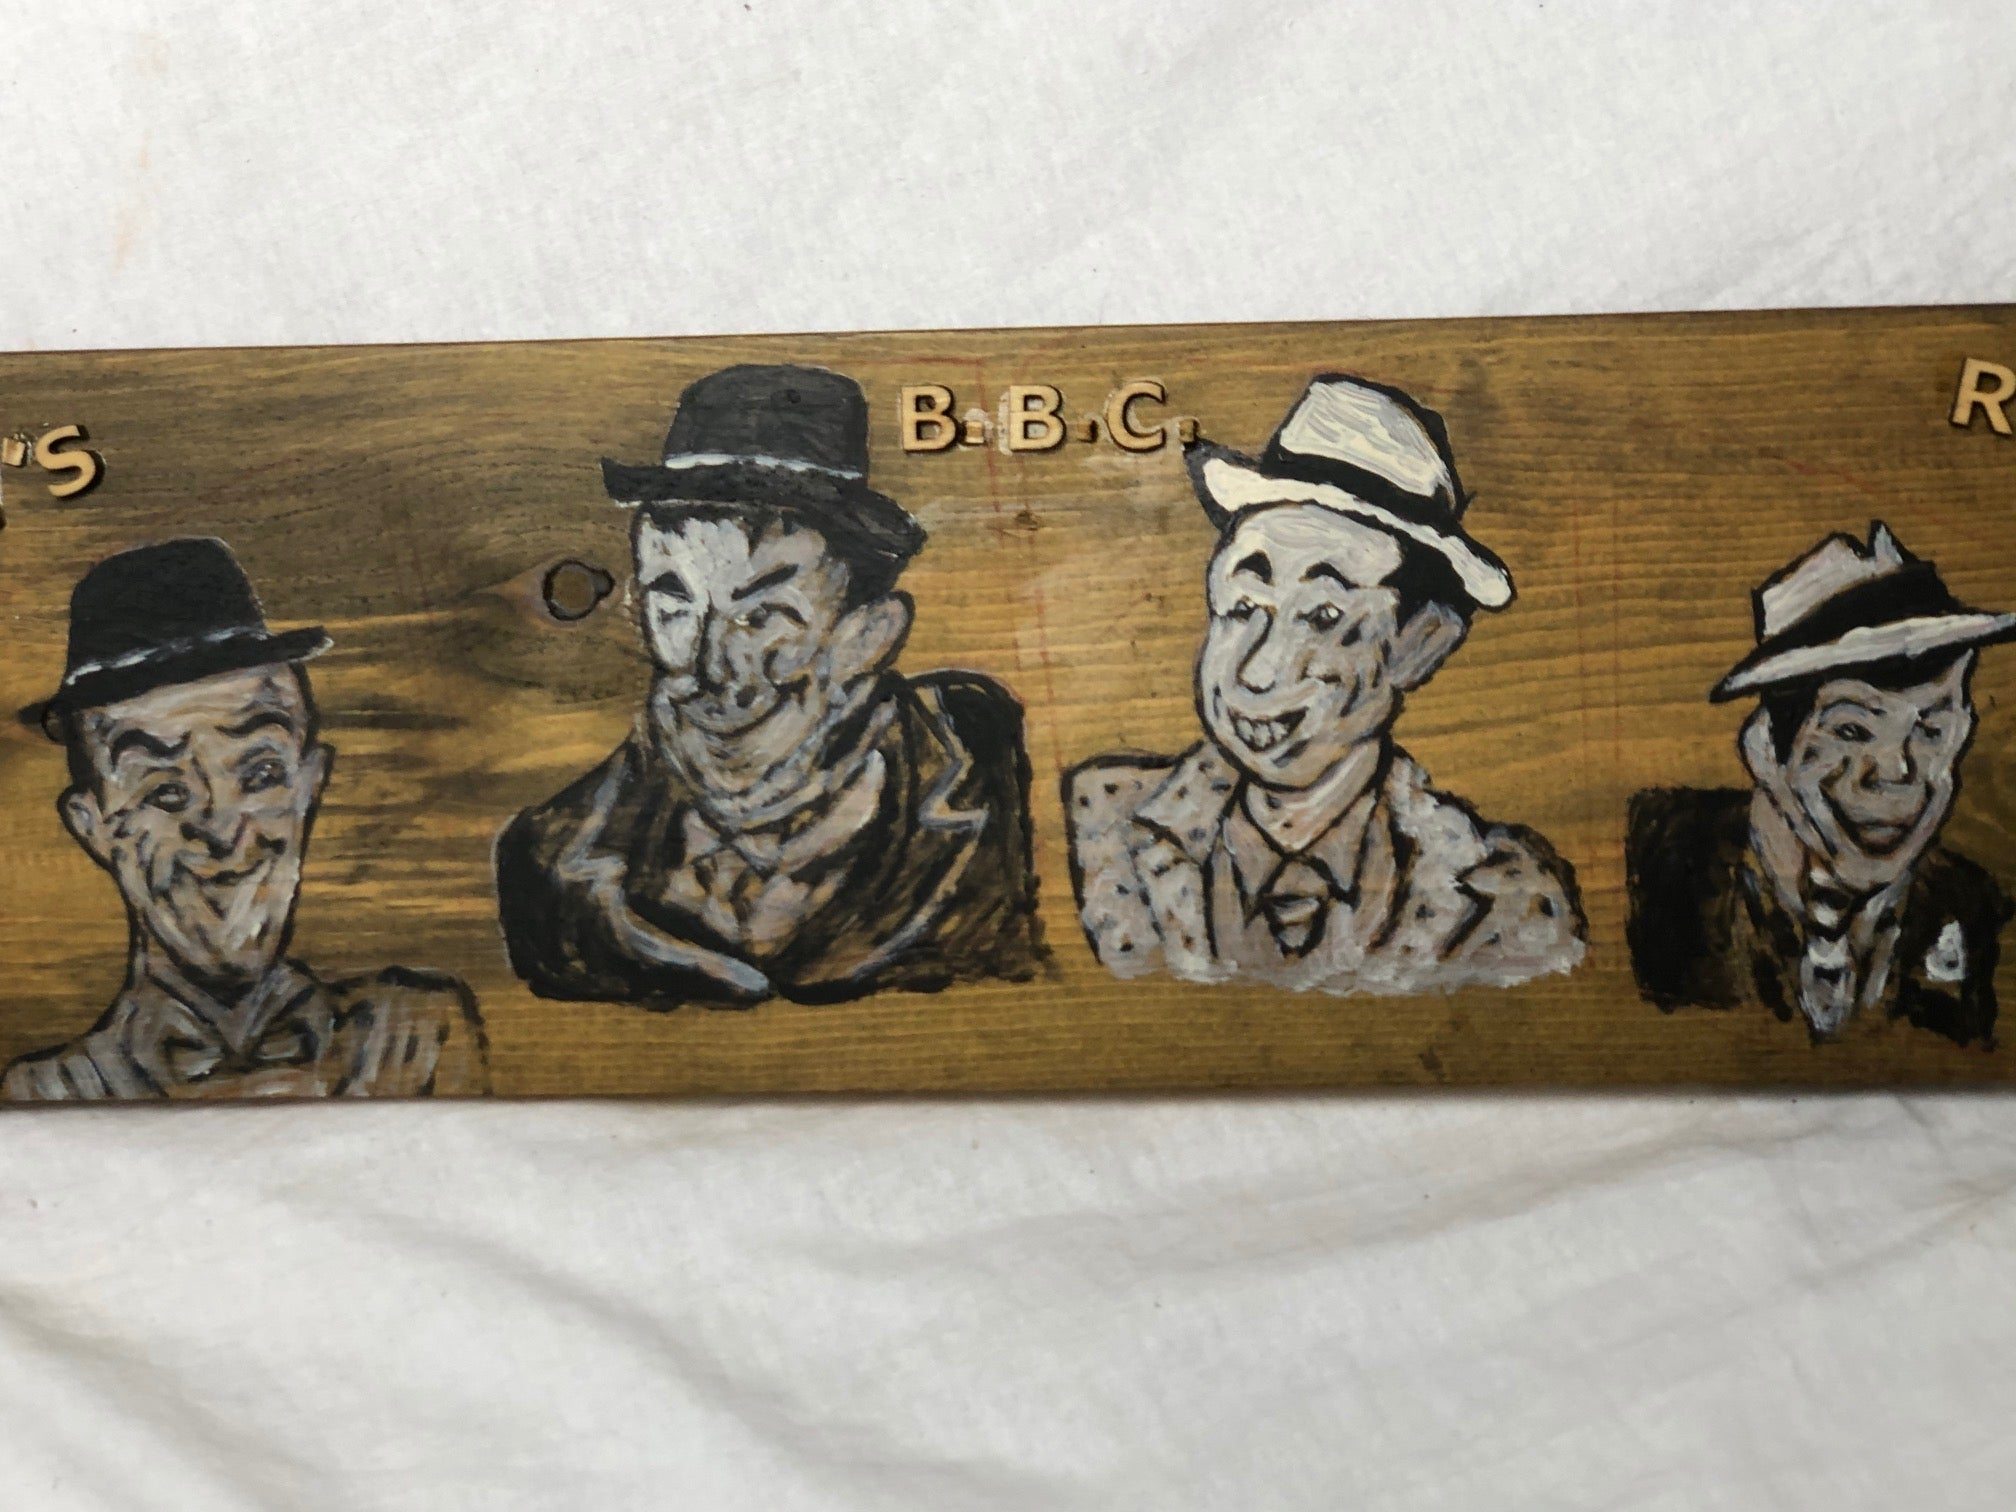 Vintage BBC Radio Laurel & Hardy Advertising Artwork Painting Sign Panel Plaque